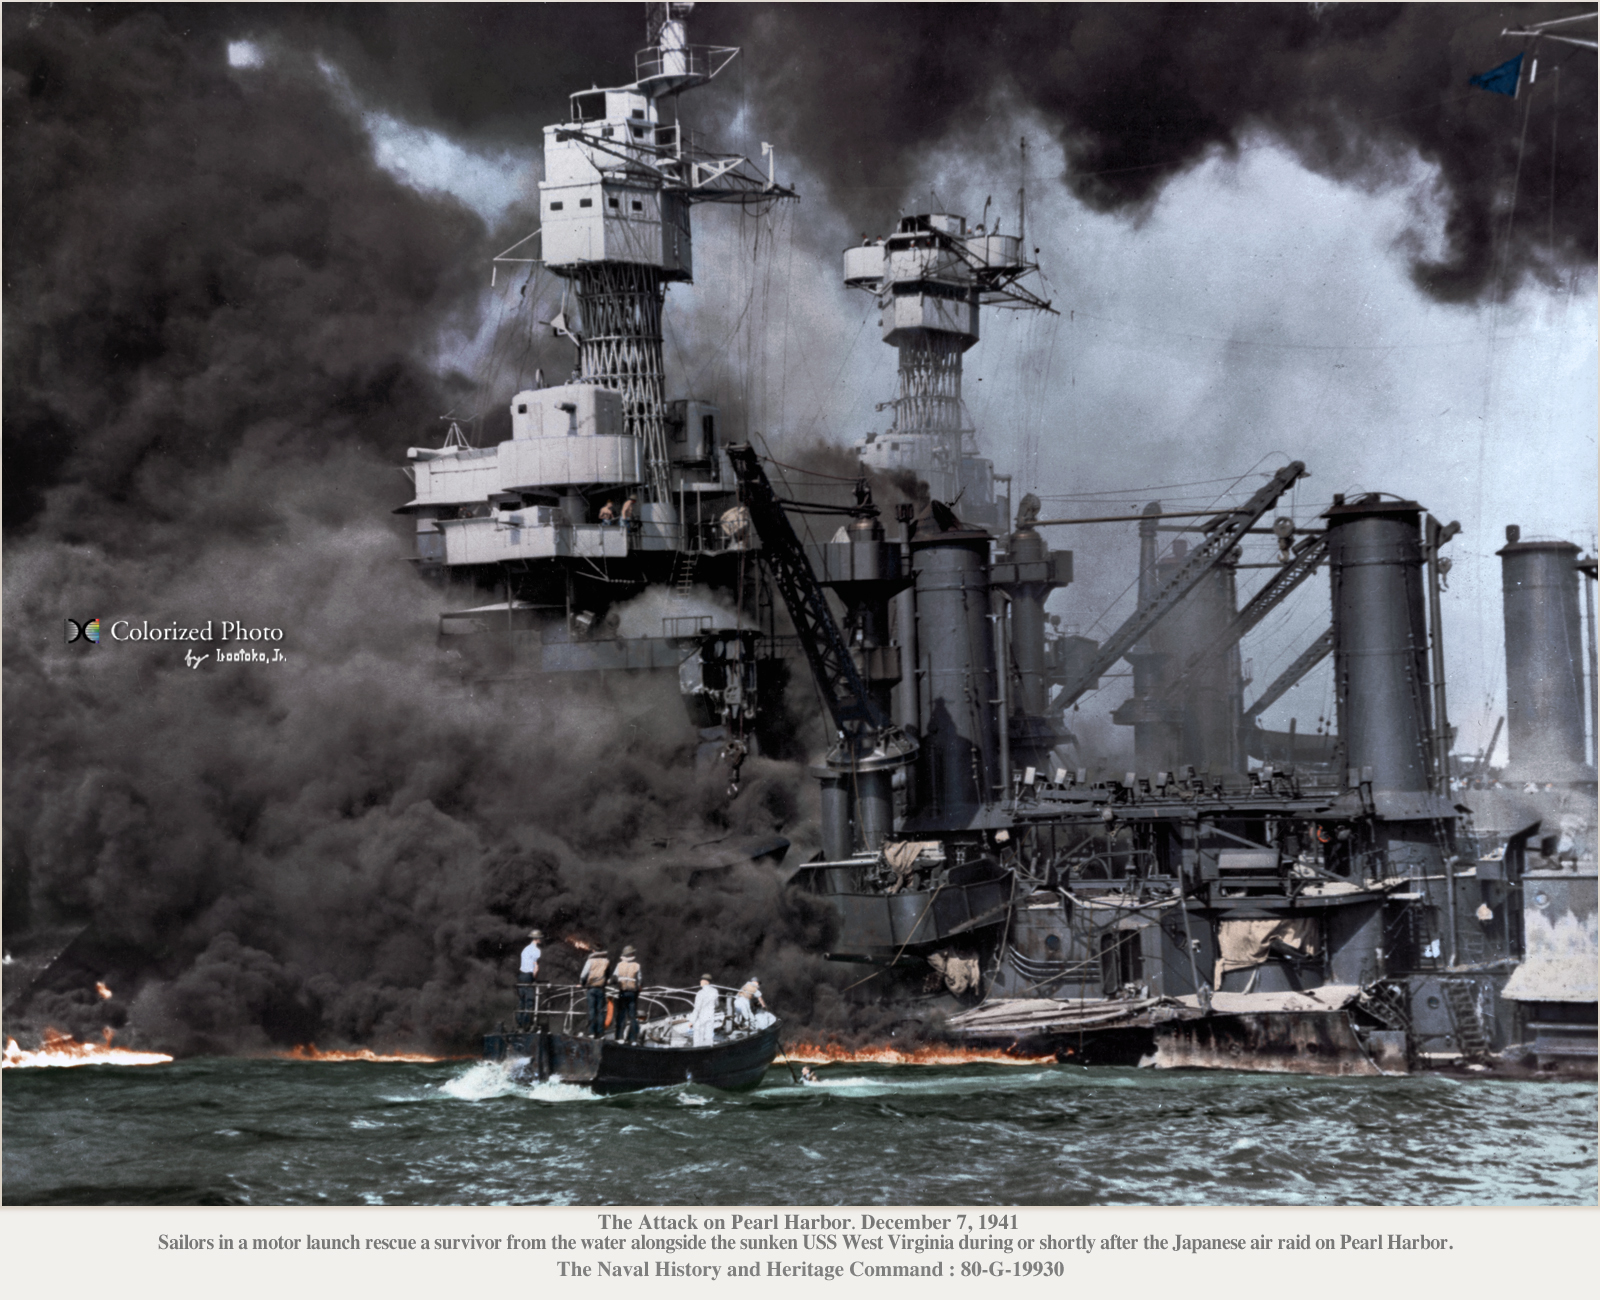 a history of the attack on pearl harbor in 1941 With this year being the 70th anniversary of the pearl harbor attack, we thought it would be important to visit with survivors, many of whom are in their 90shistory now lends weight to that day.